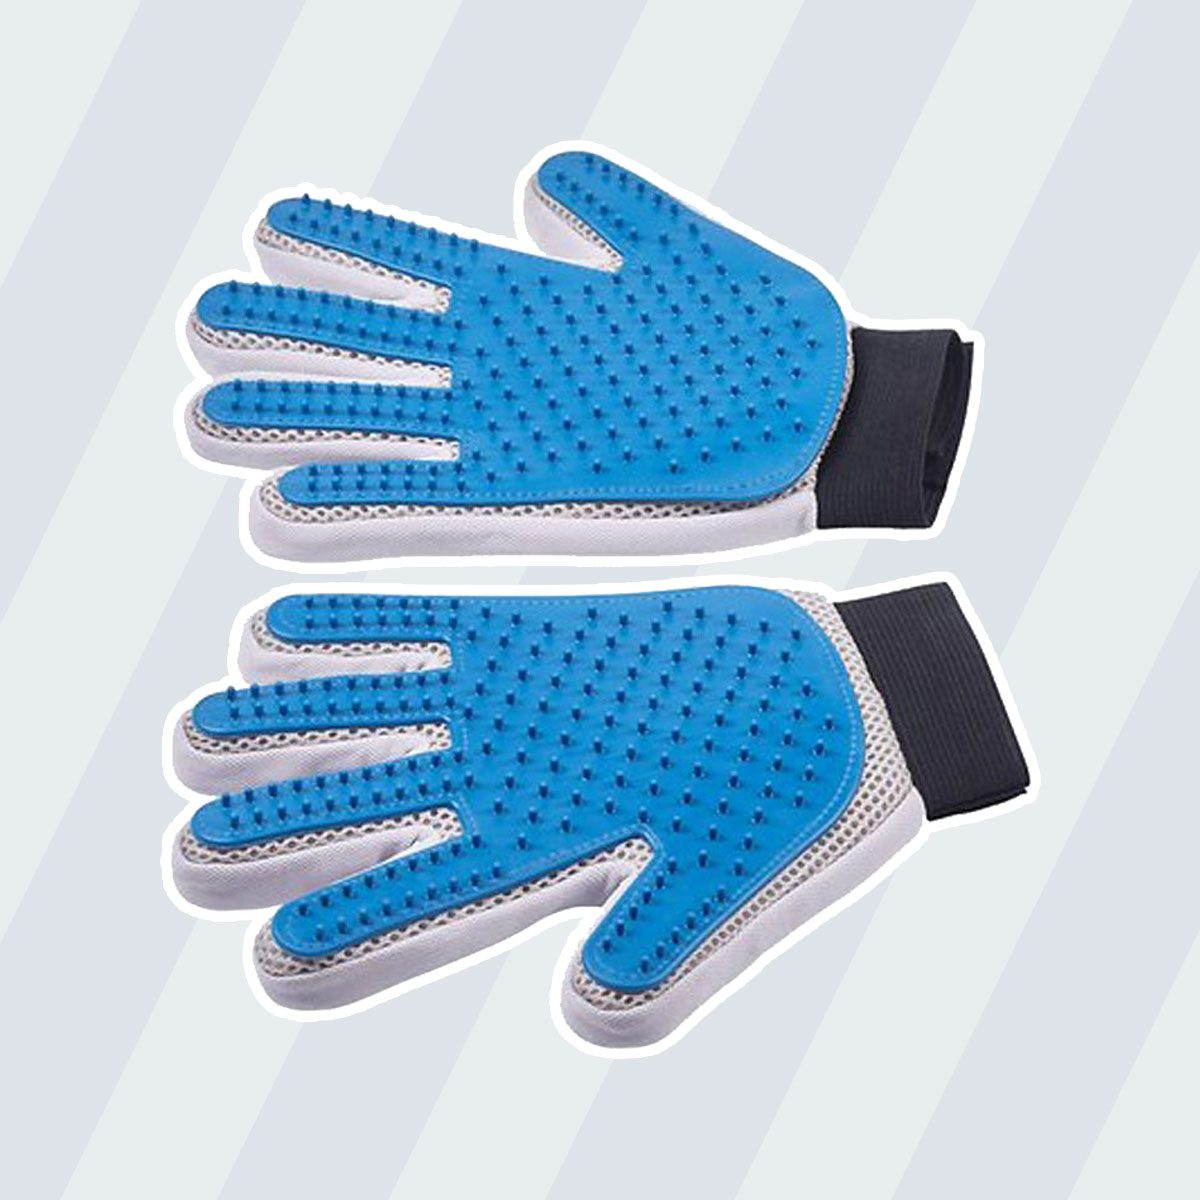 Pat Your Pet Five Finger Grooming Glove